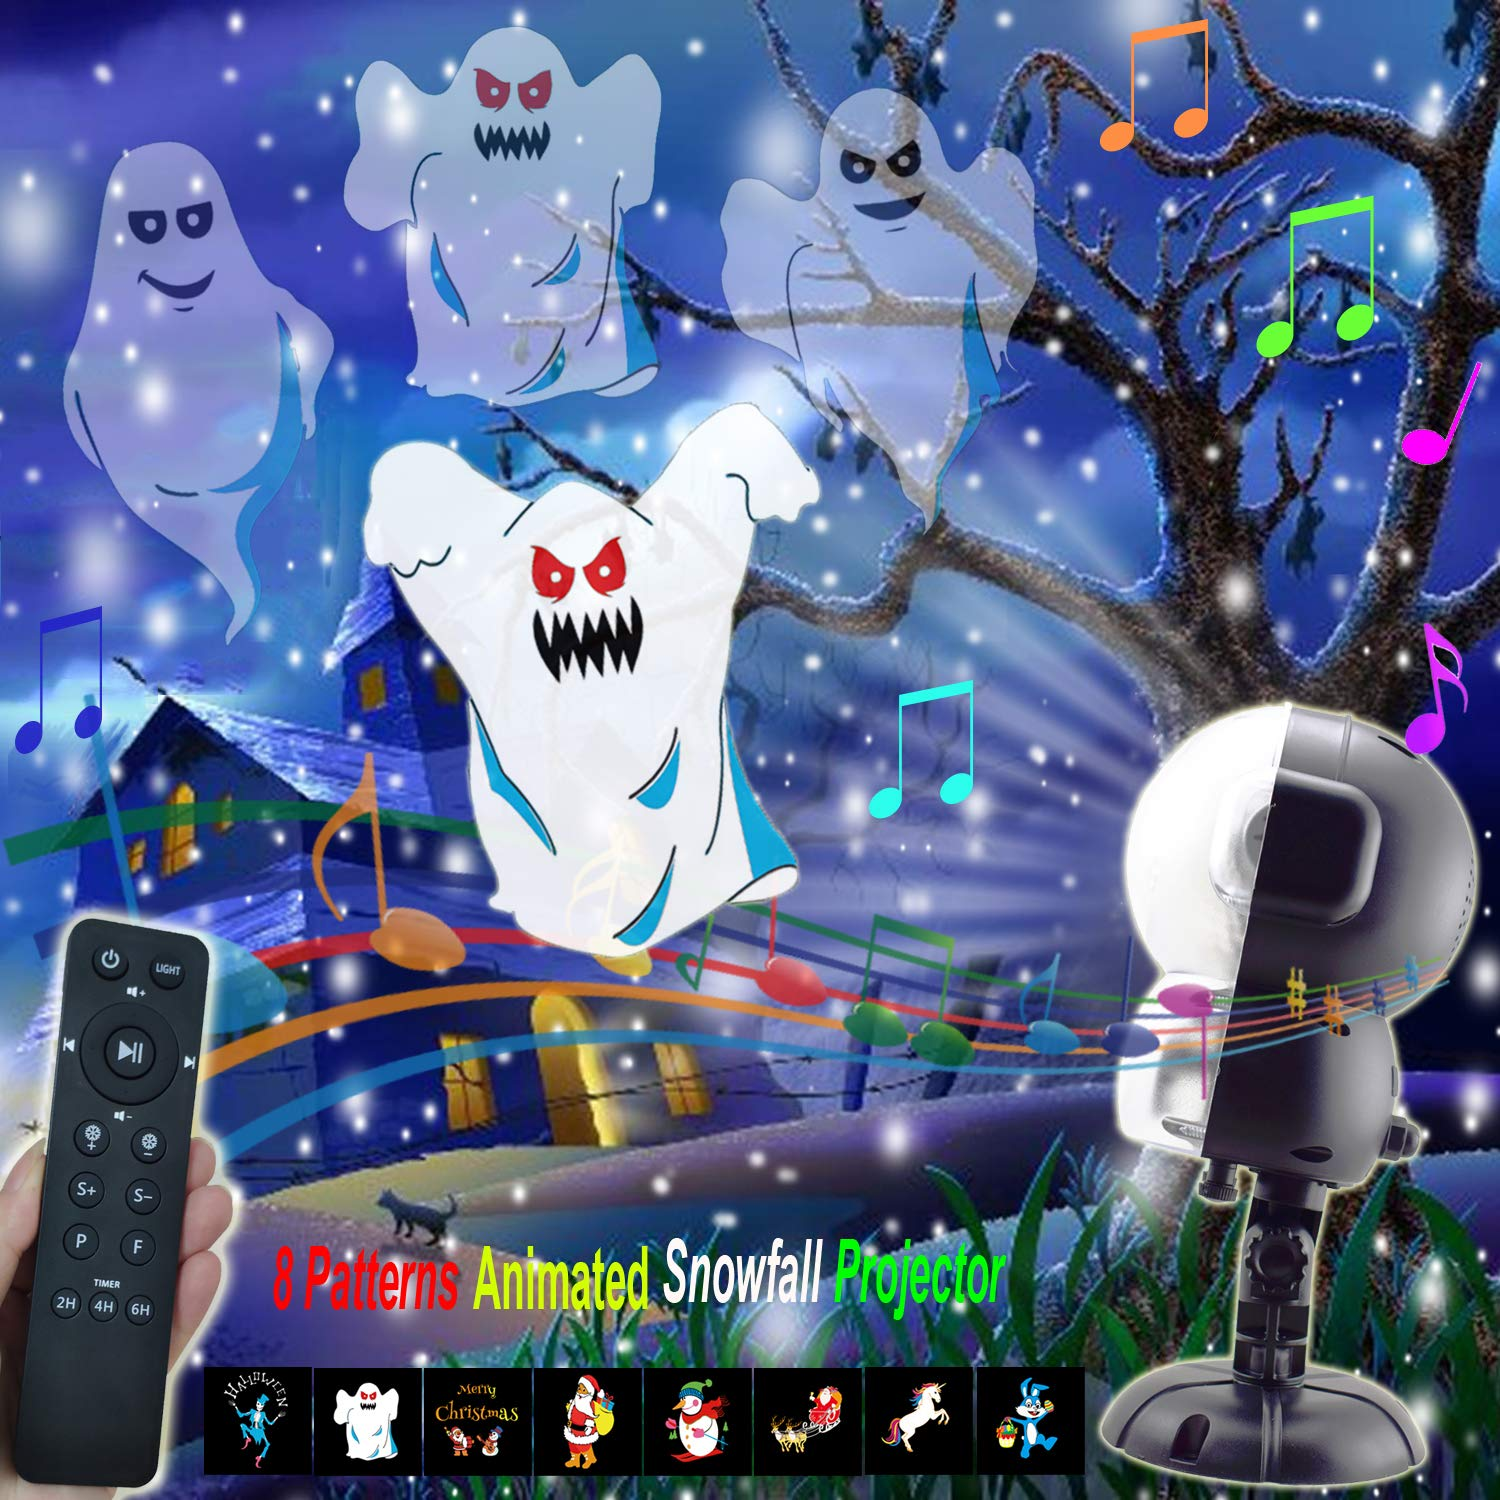 AIDERLY Halloween Christmas Music 8 Pattern Snow Projector LED Lights Waterproof Timer Snowfall Light with Remote Controller for Indoor Outdoor Santa Stage Festival Wedding Birthday Party (Black)